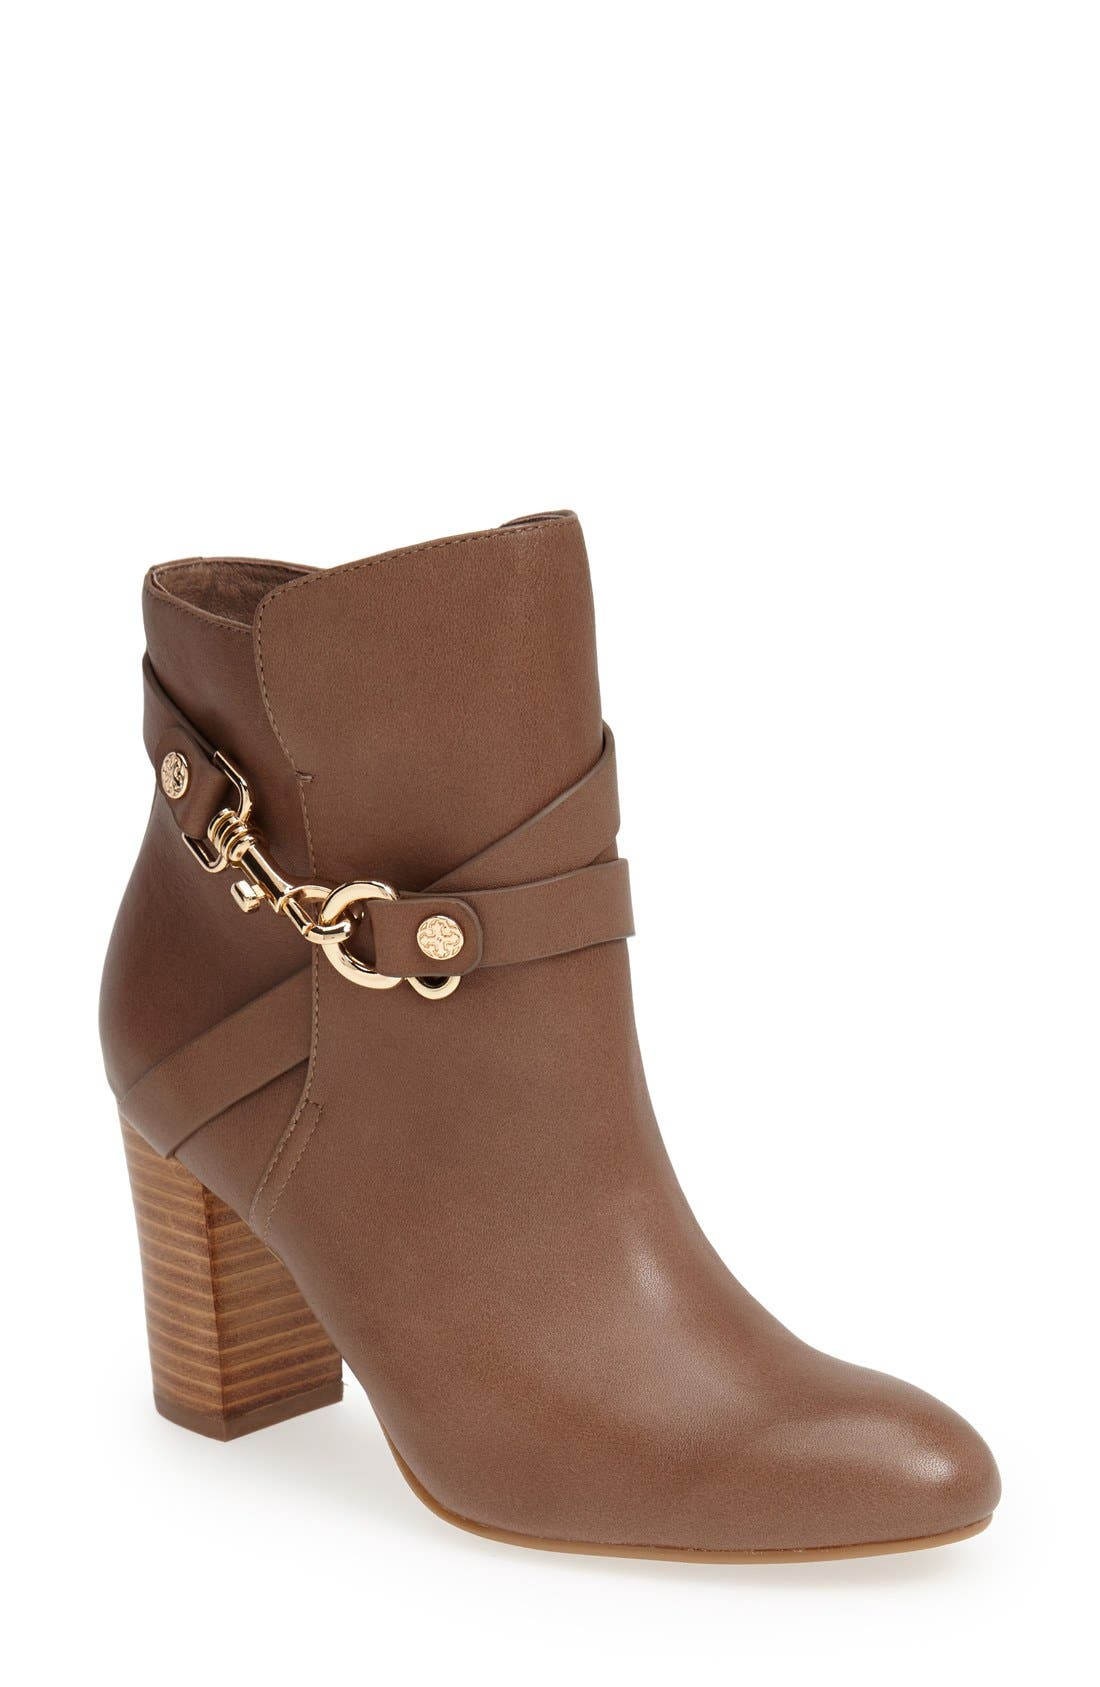 Main Image - Isolá 'Colleen' Leather Bootie (Women)